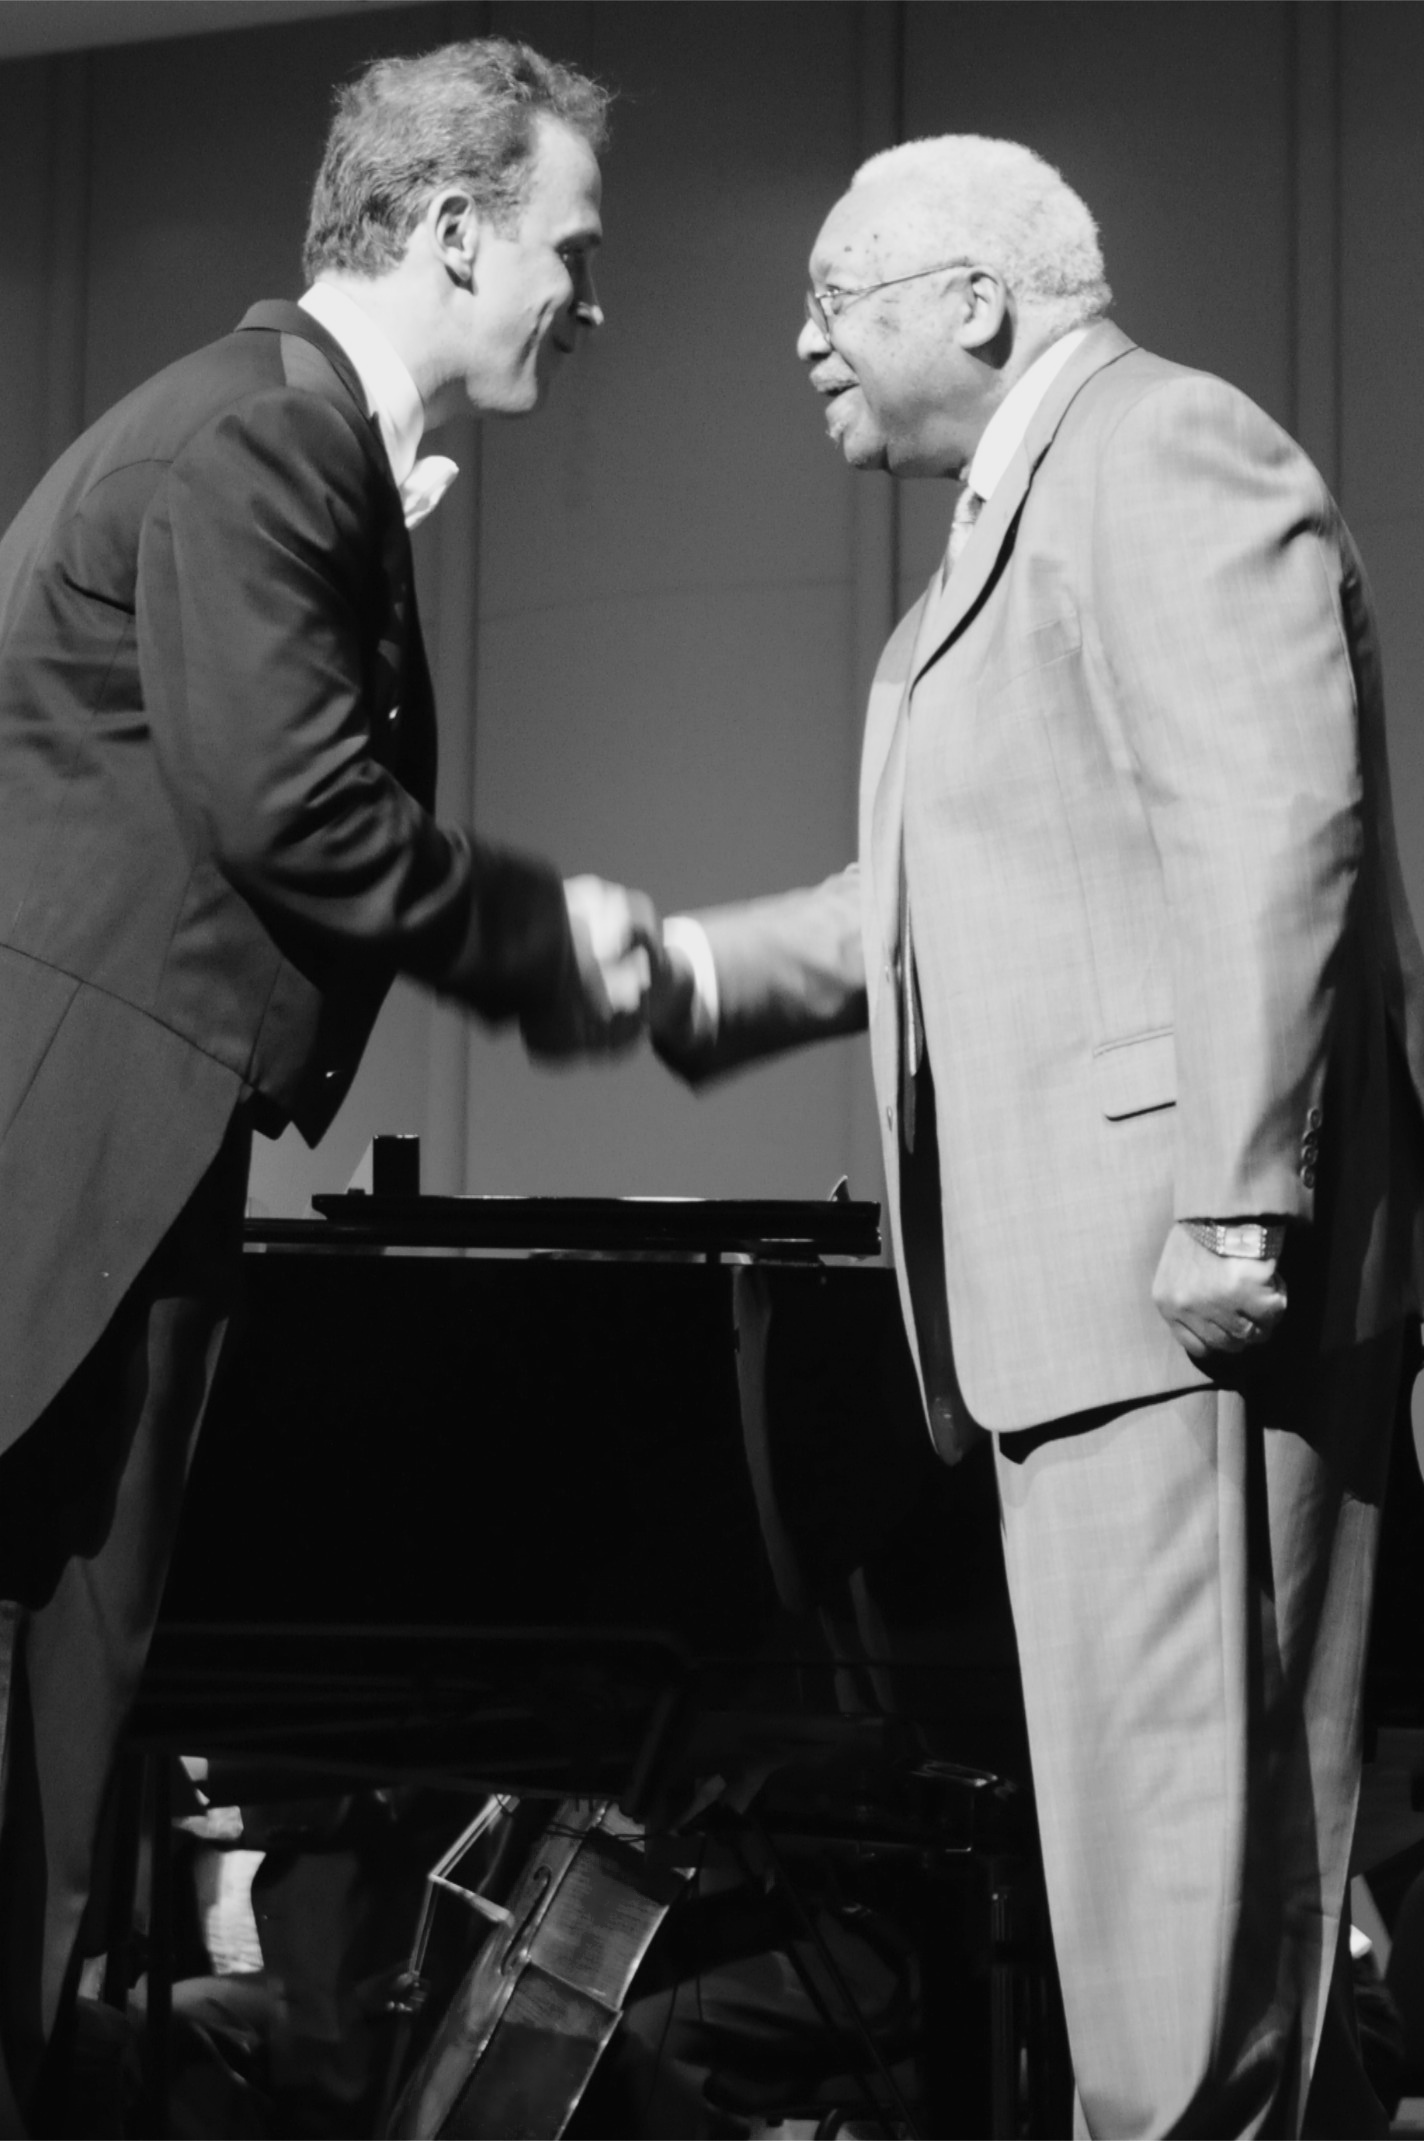 Conductor of the Louisiana Philharmonic Orchestra Meets Ellis Marsalis